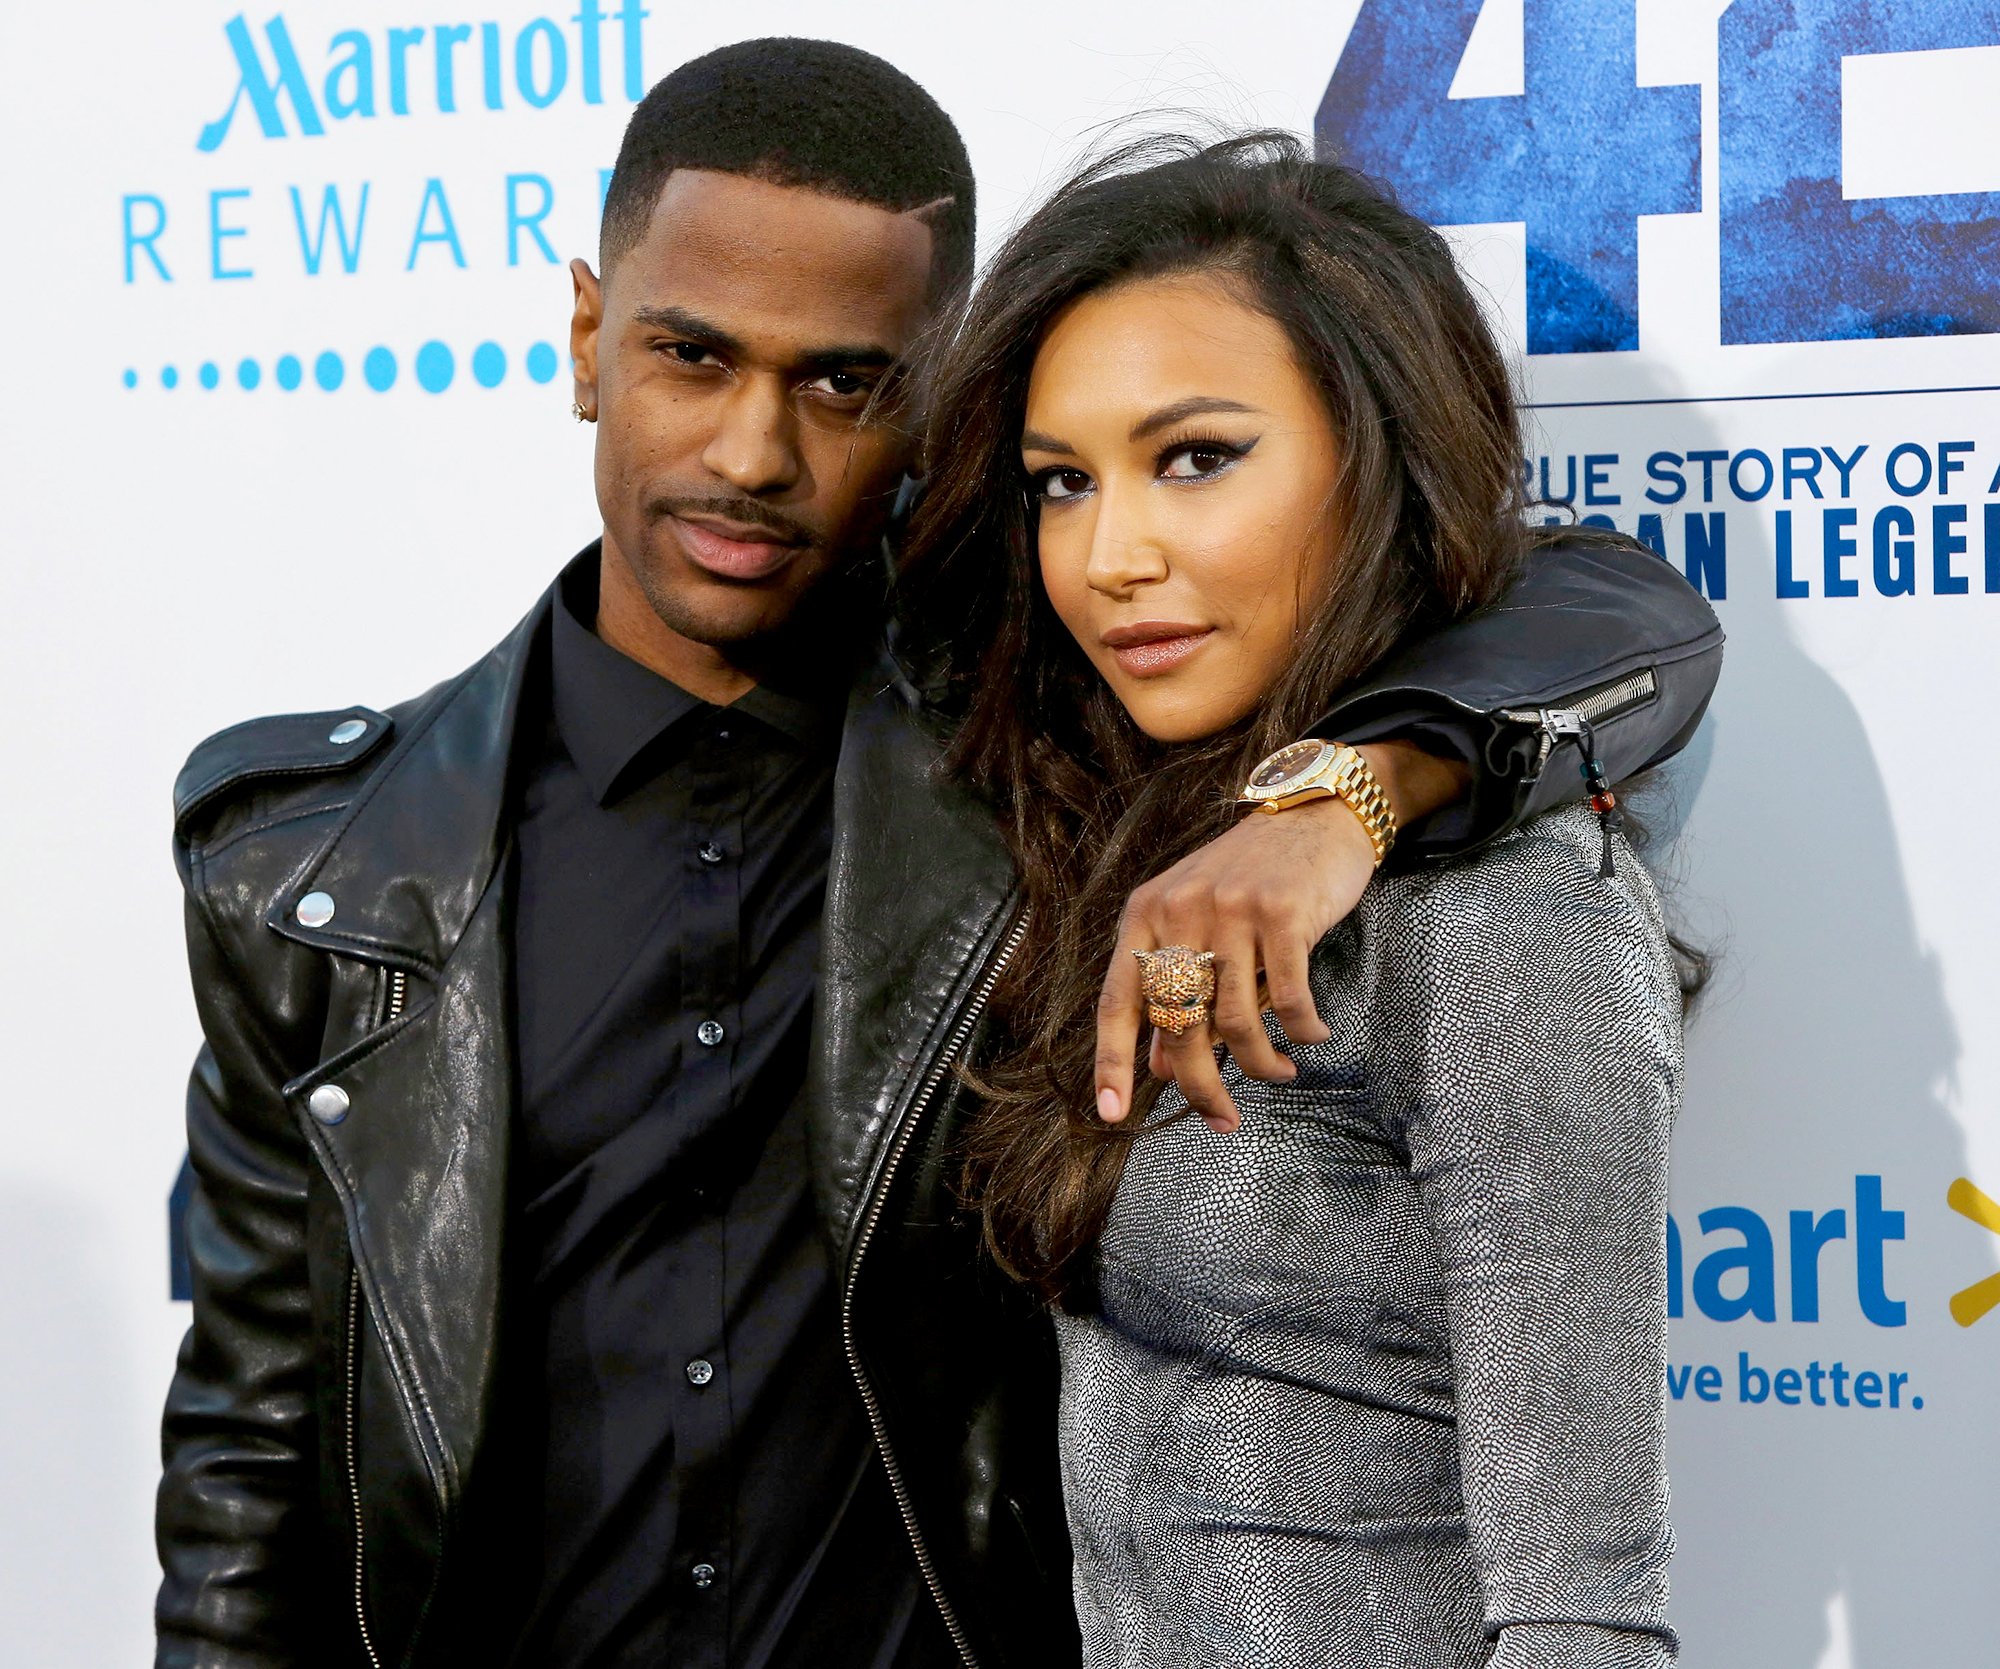 Big-Sean-Naya-Rivera - The Glee alum and her ex-fiancé met on Twitter in March 2013, the rapper admitted at the 2013 Teen Choice Awards. The duo called off their engagement in April 2014, which was a surprise to Rivera .